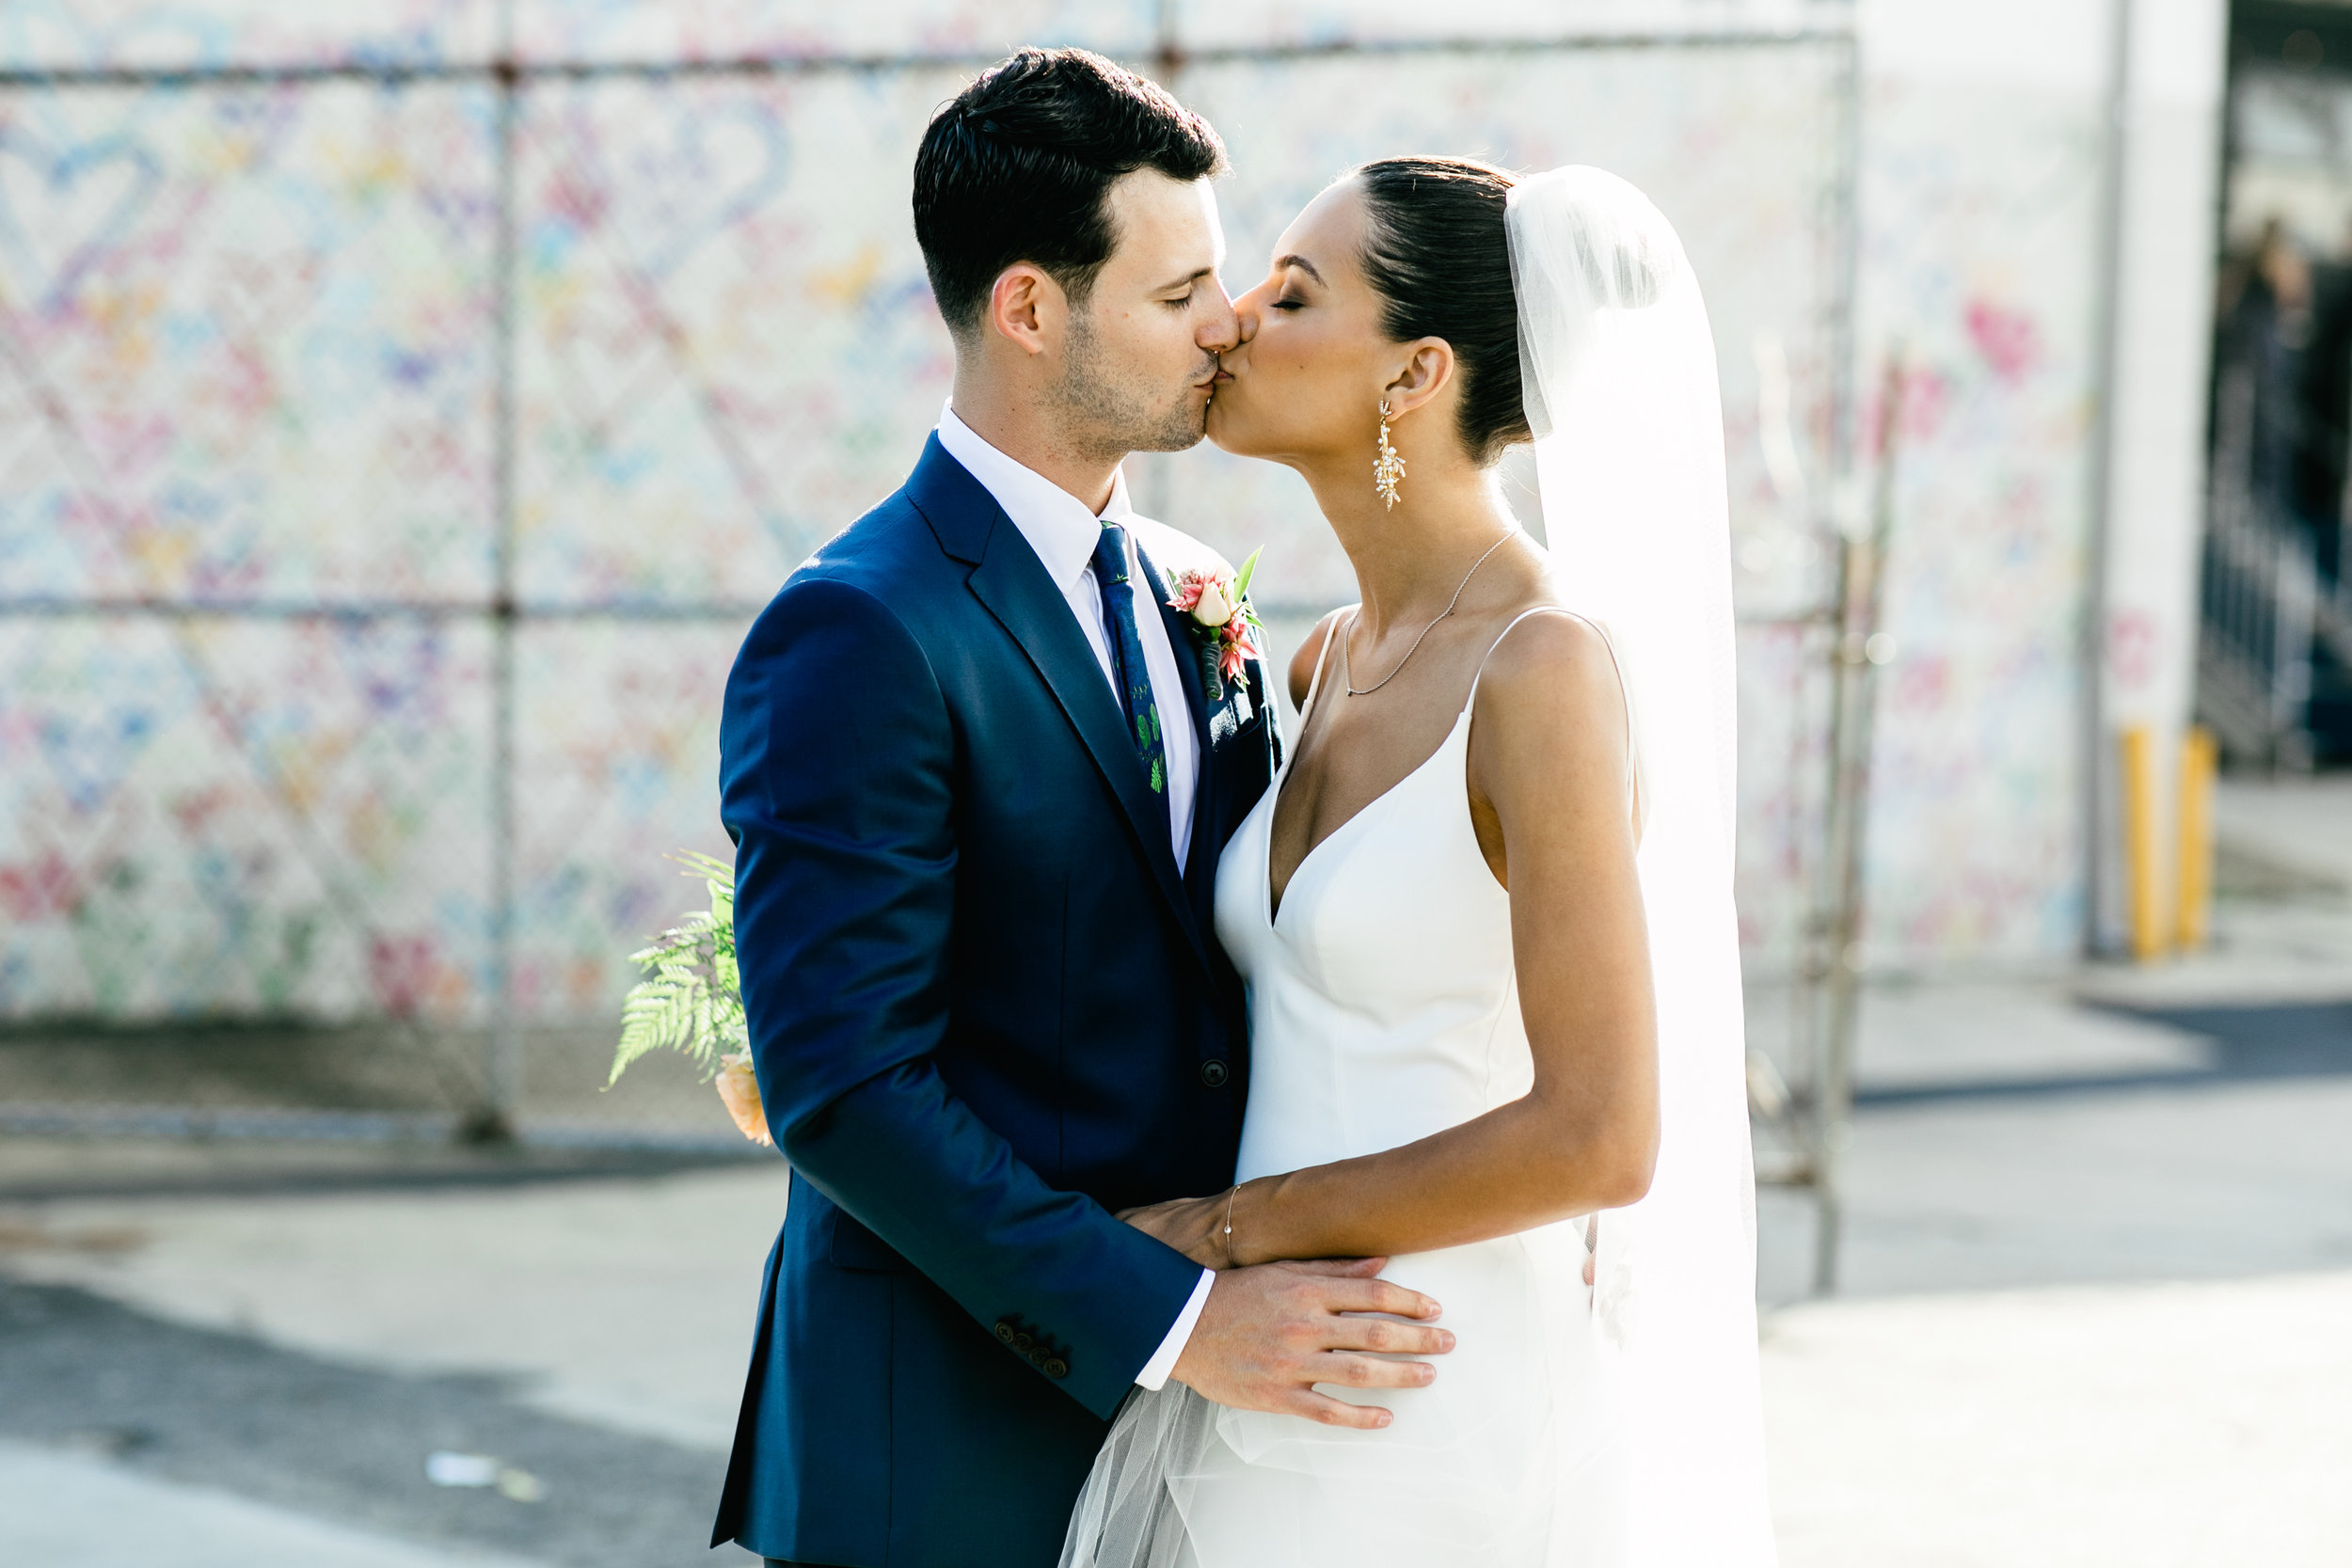 photography-wedding-weddings-natural-candid-dock 5 dc-washington dc-philadelphia-mixed race-editorial-modern-fine-art-038.JPG